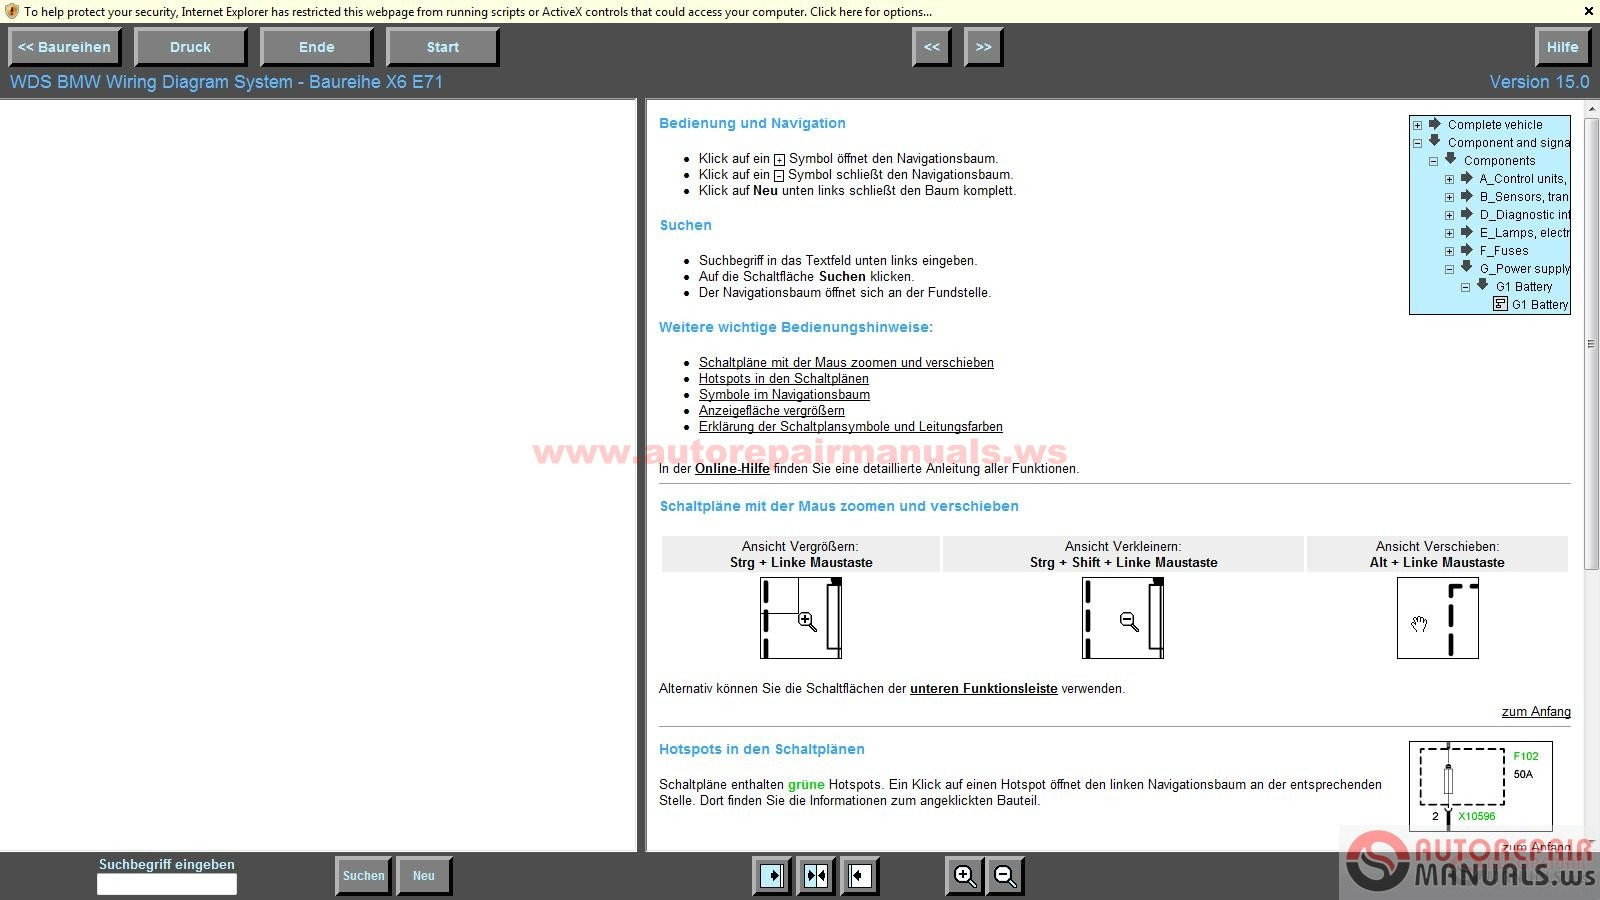 small resolution of bmw wds v15 and mini wds v7 wiring diagram system free download now